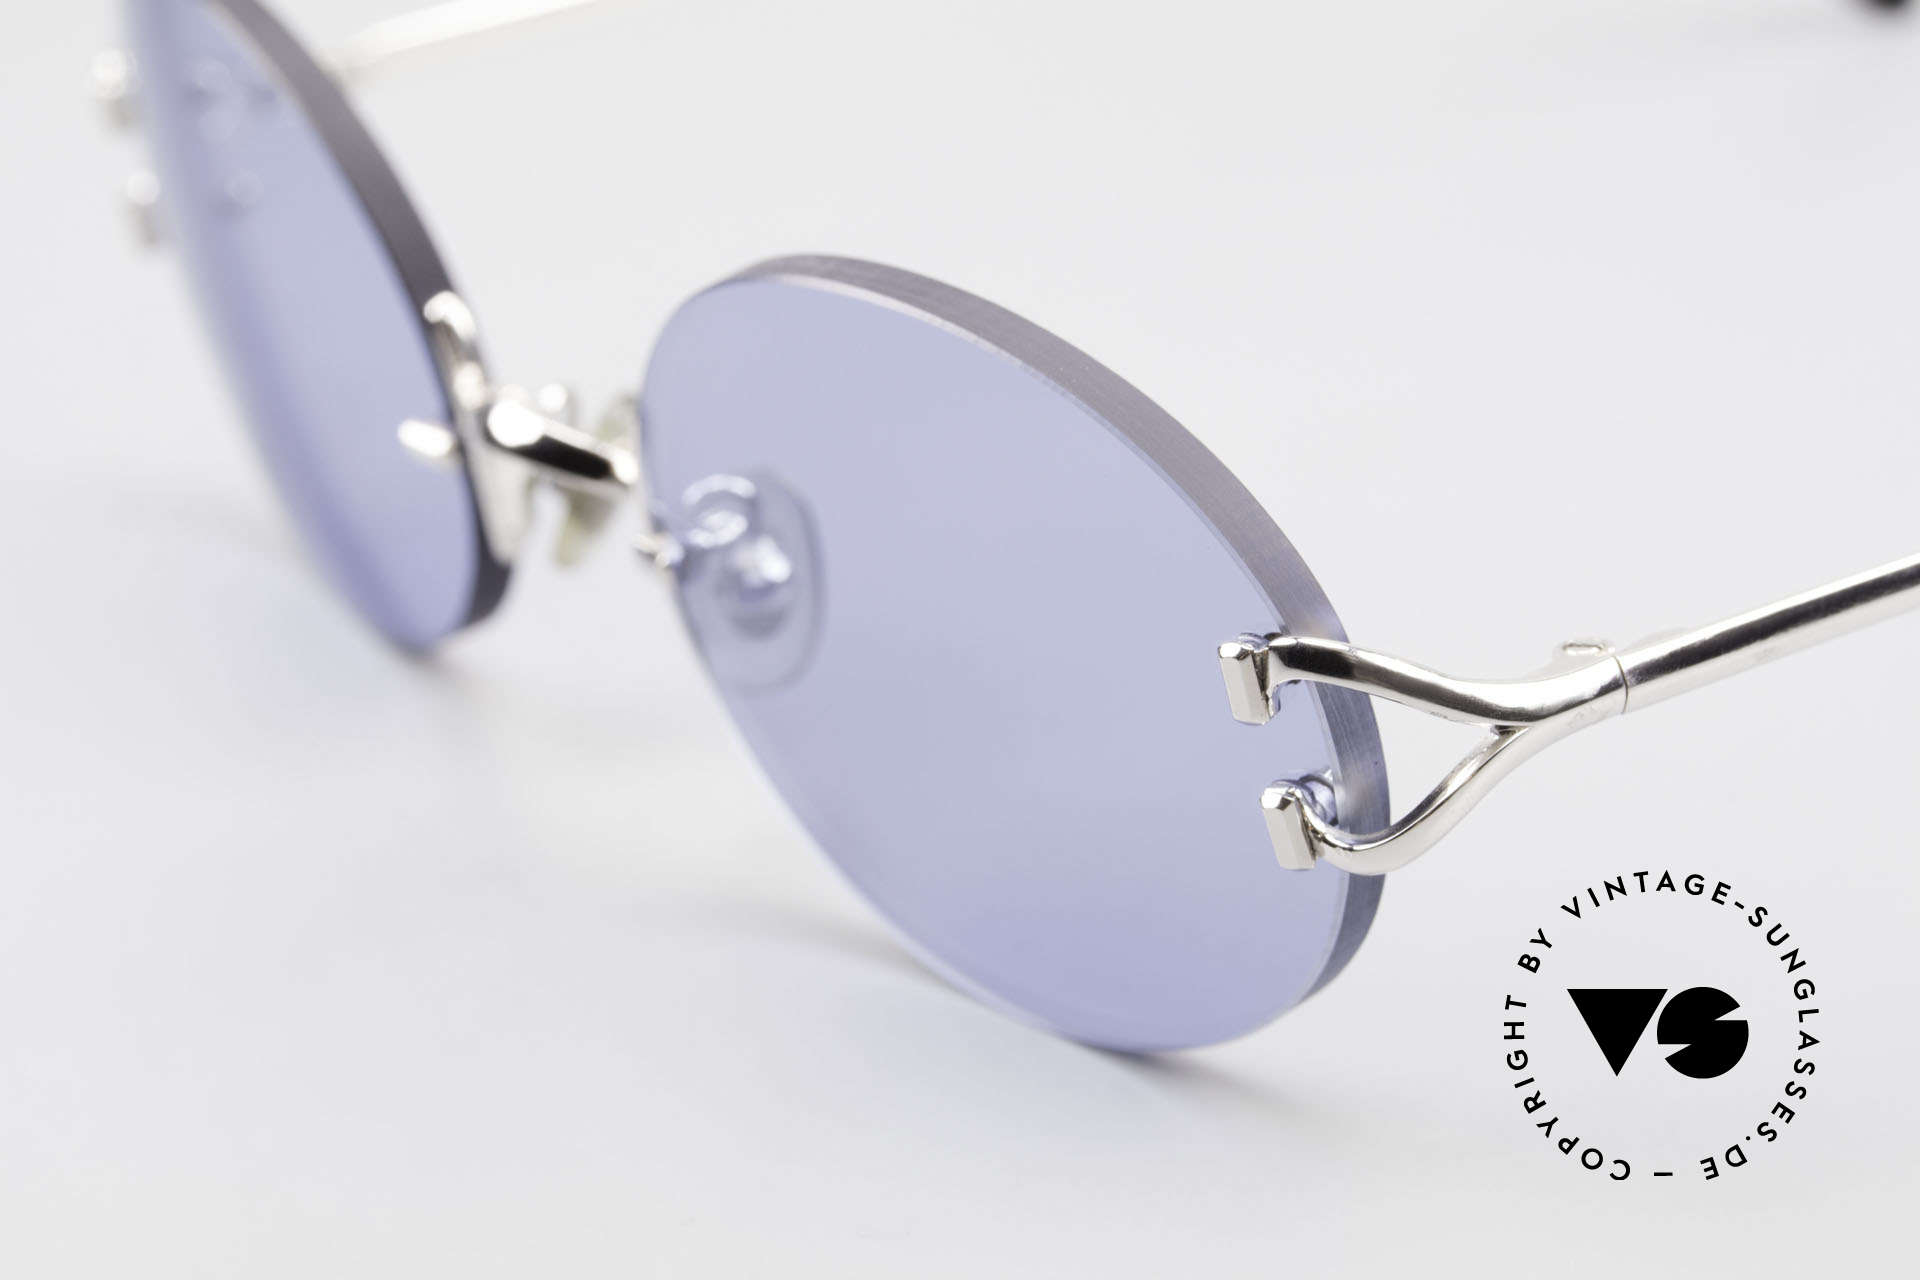 Cartier Rimless Giverny Oval Rimless Luxury Shades, customized lenses are identical like model 'Giverny', Made for Men and Women